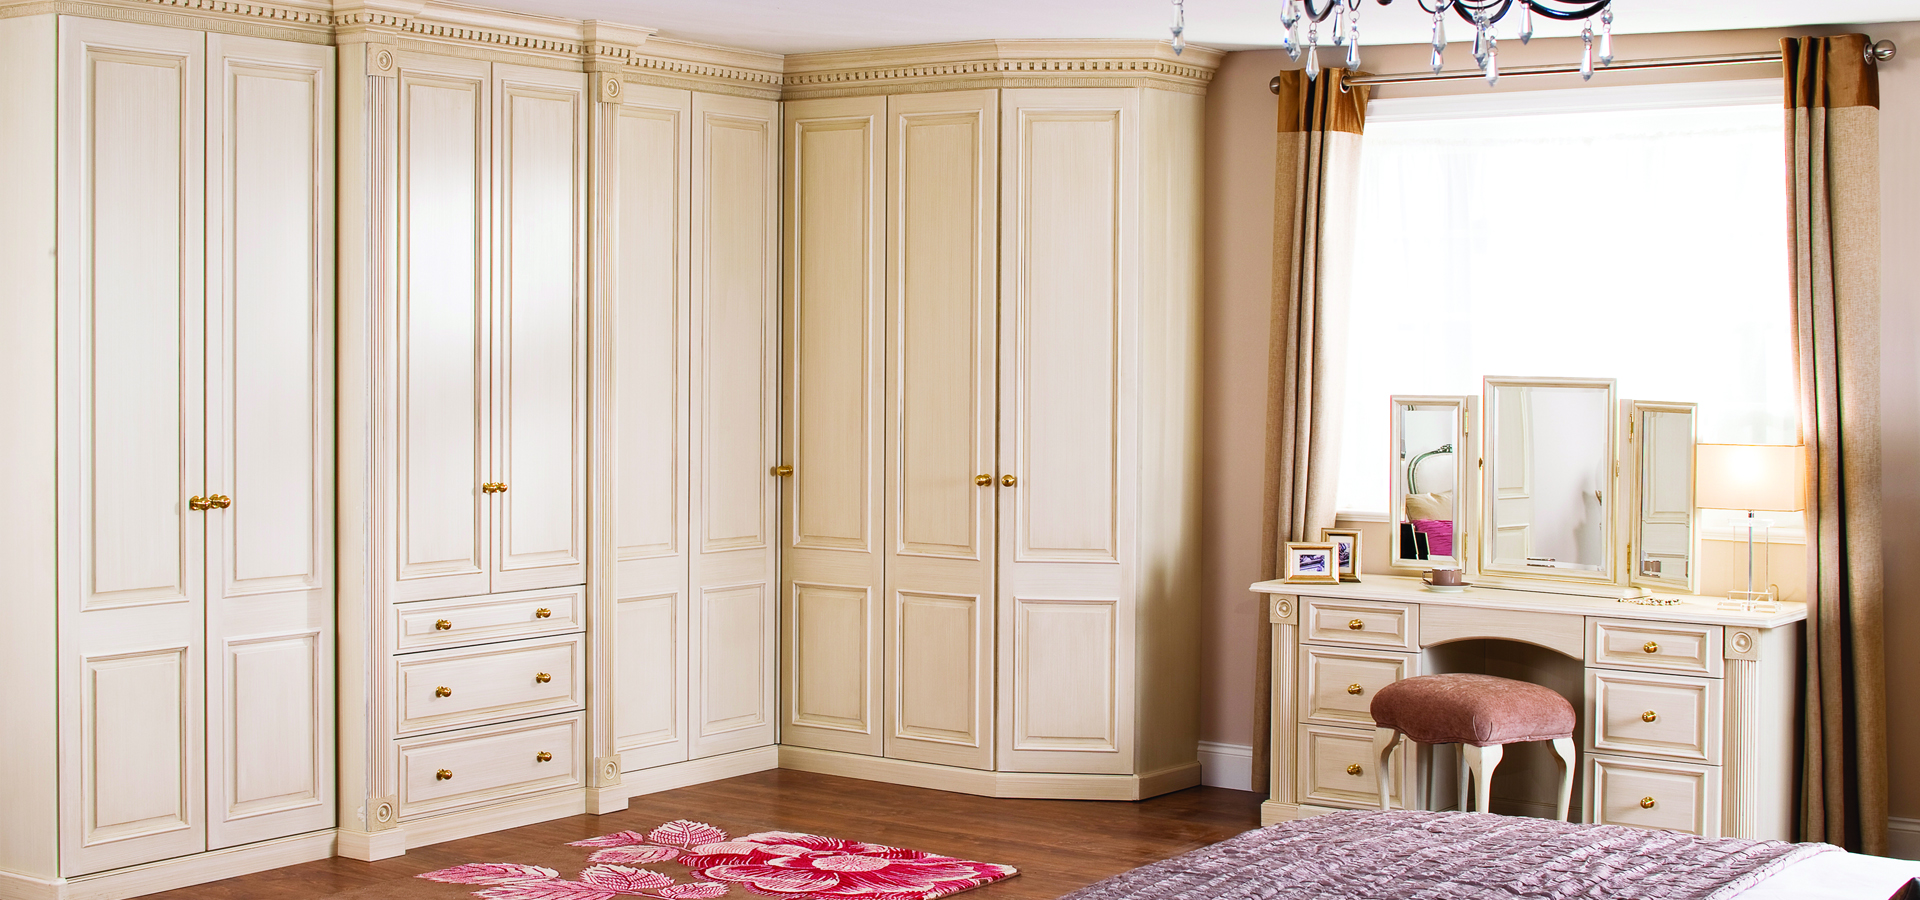 home bespoke fitted wardrobes for bedroom simulation cupboard wardrobe room design cupboards designs endearing